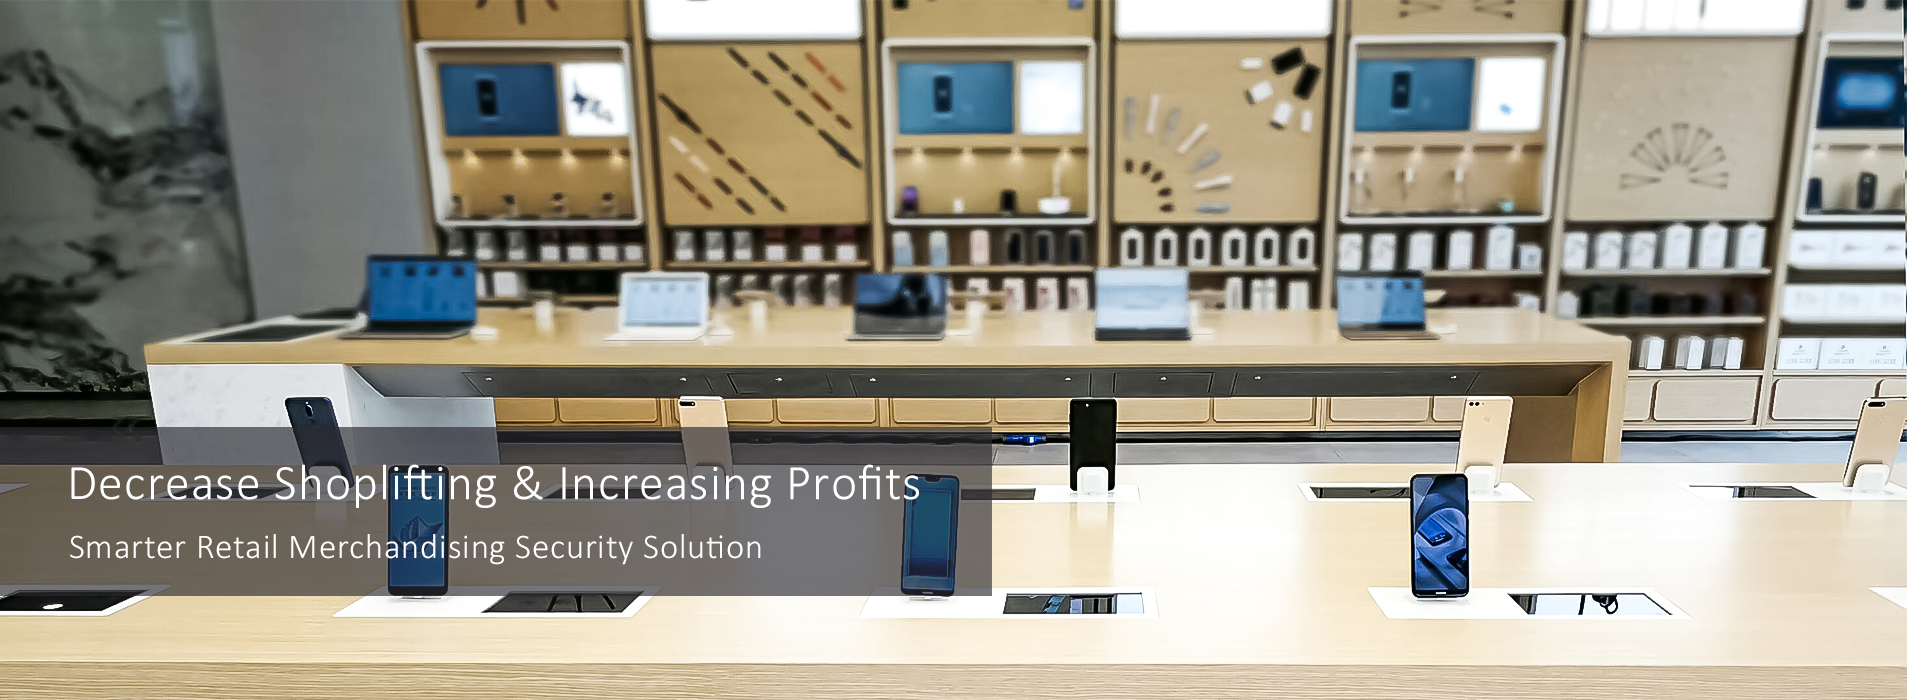 Smarter Retail Merchandising Security Solution for Retail Electronic Store